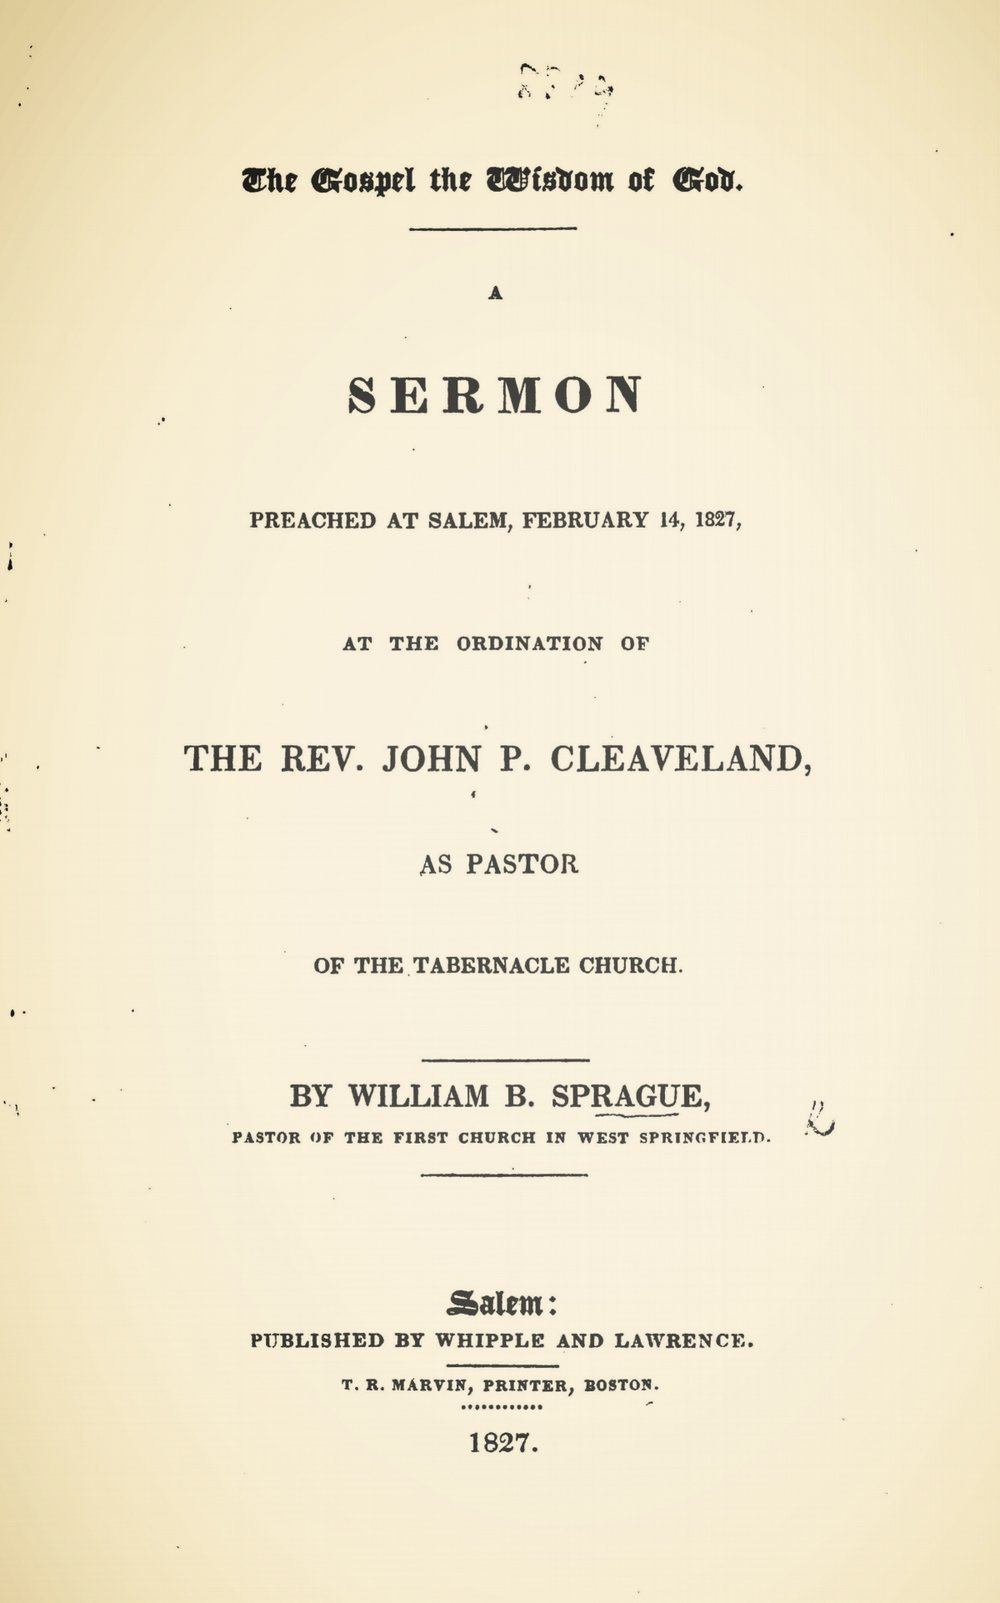 Sprague, William Buell, The Gospel the Wisdom of God Title Page.jpg